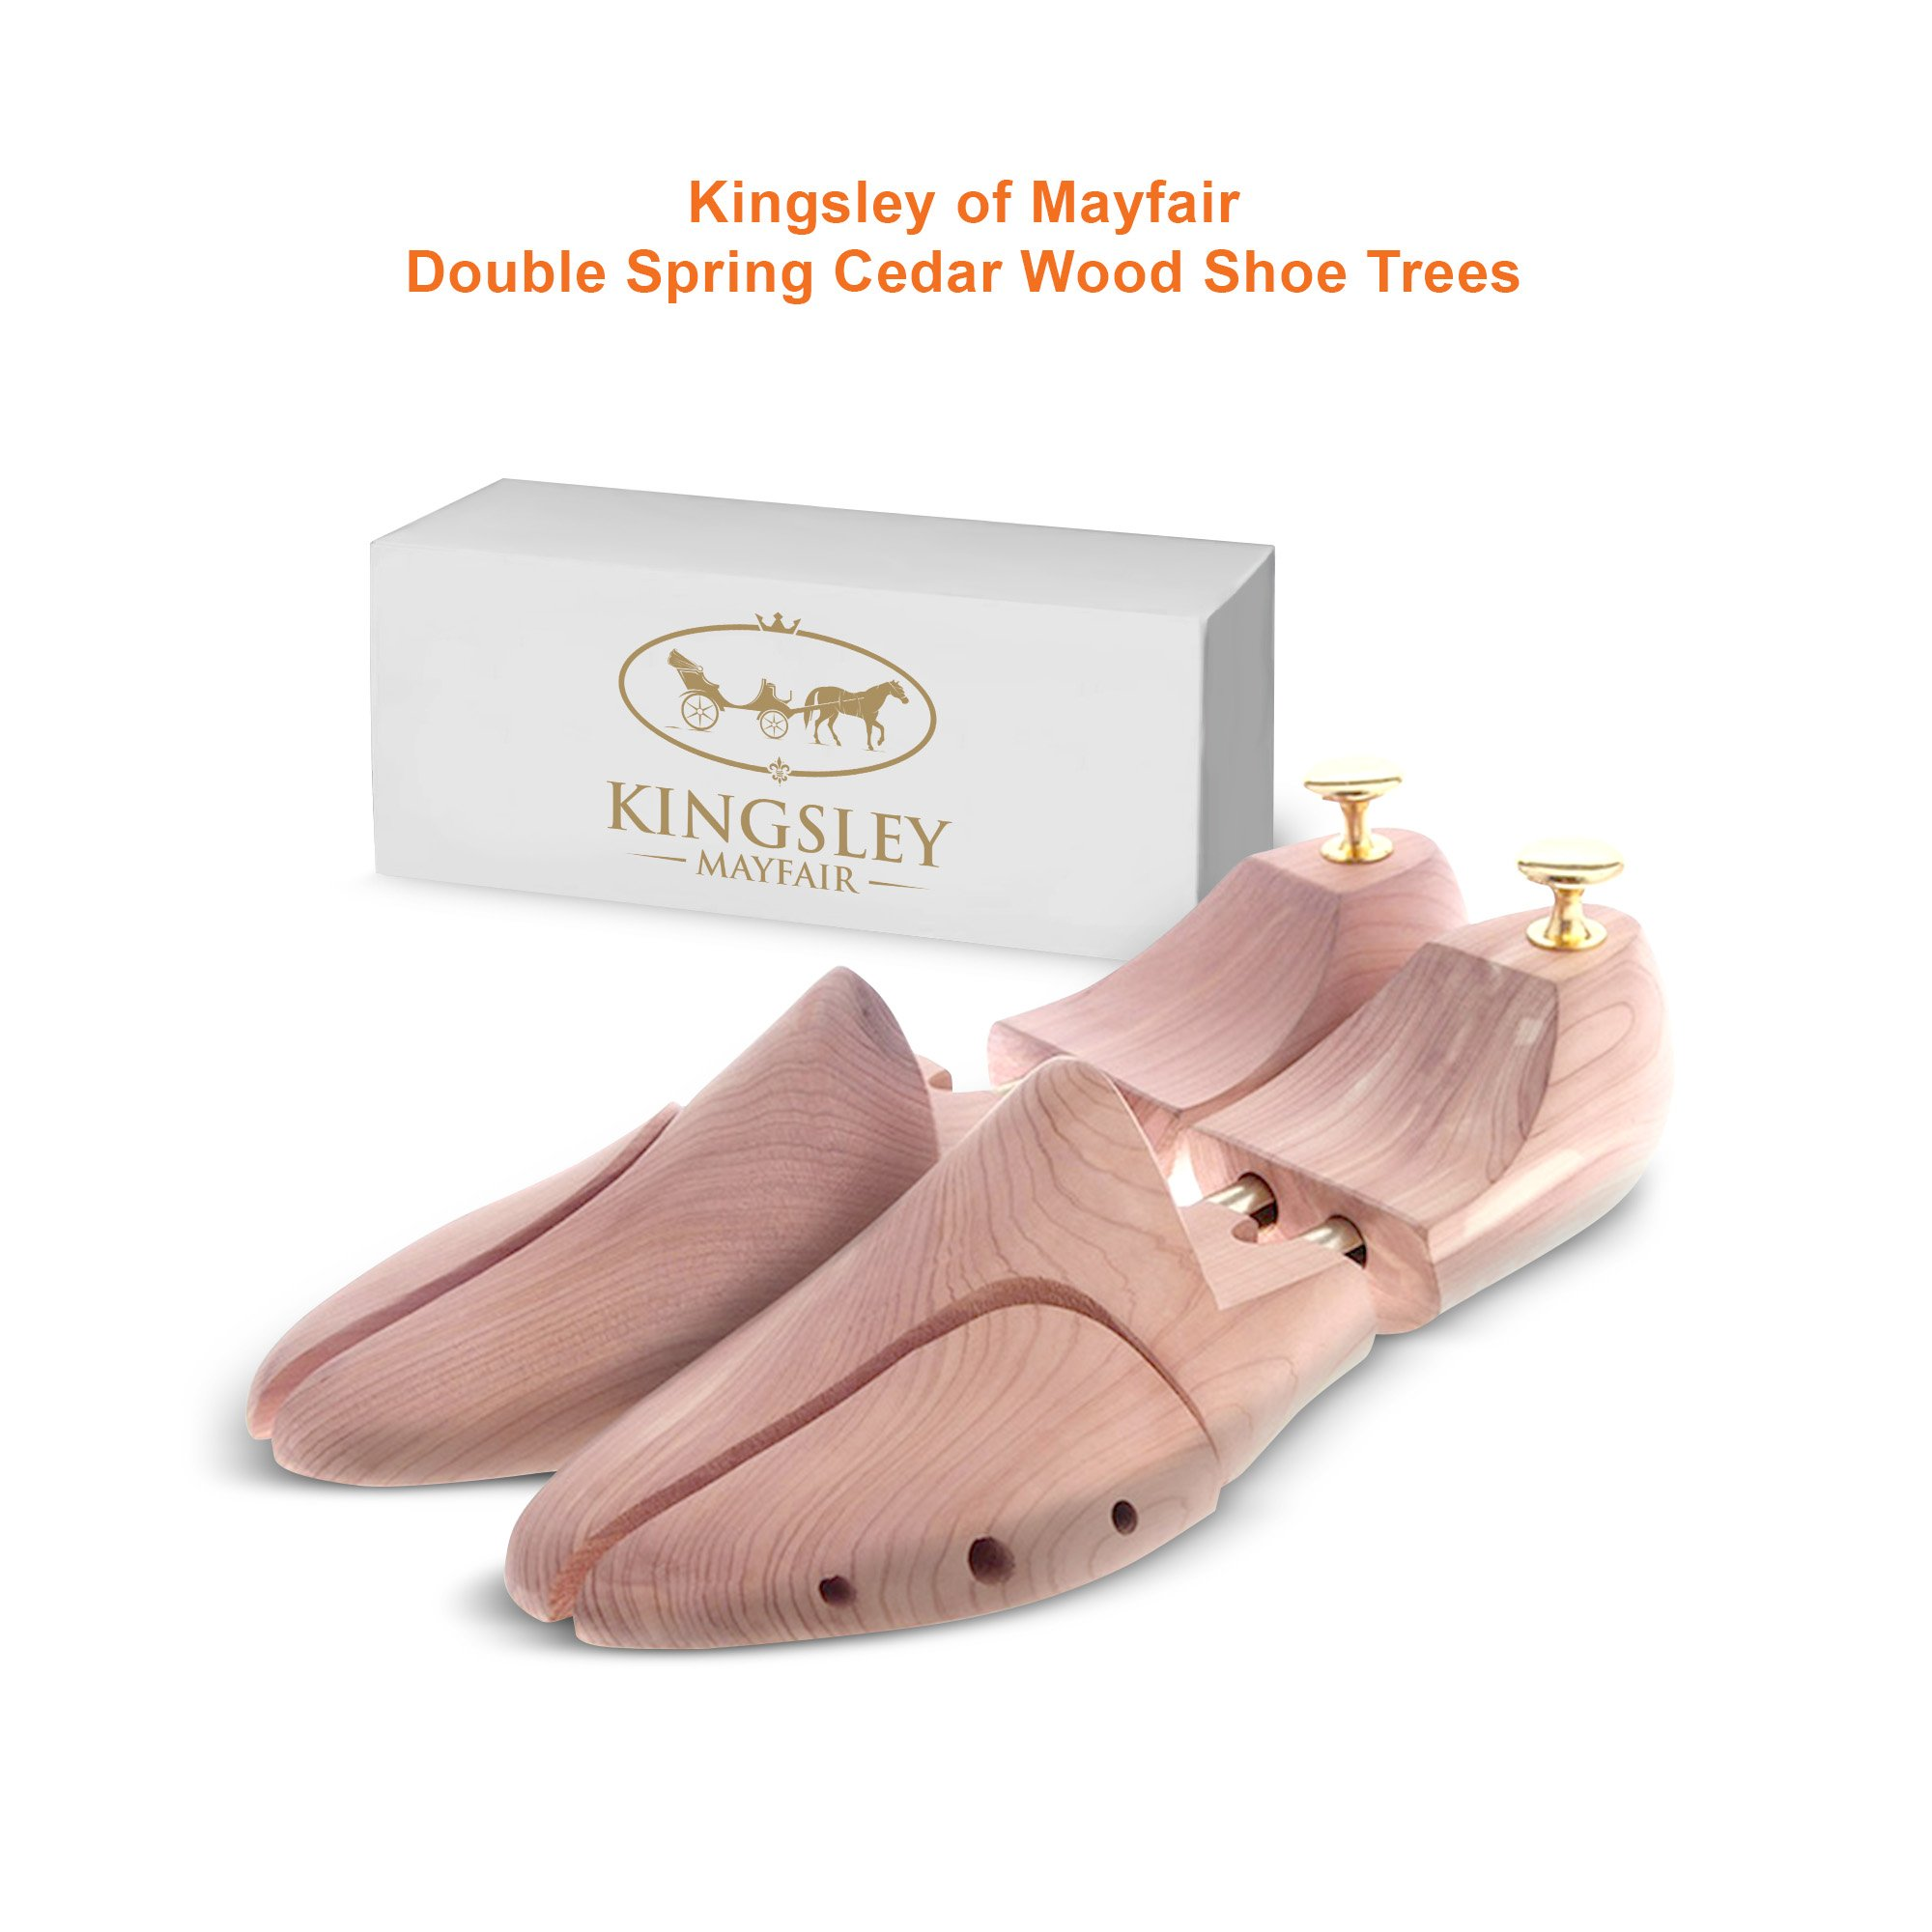 Kingsley of Mayfair's Adjustable Double Spring American Cedar Wood Shoe Tree to Maintain Shoe Shape, Control Odor, Absorb Moisture and Maintain your Leather Shoes in Perfect Condition (Size 46-47)